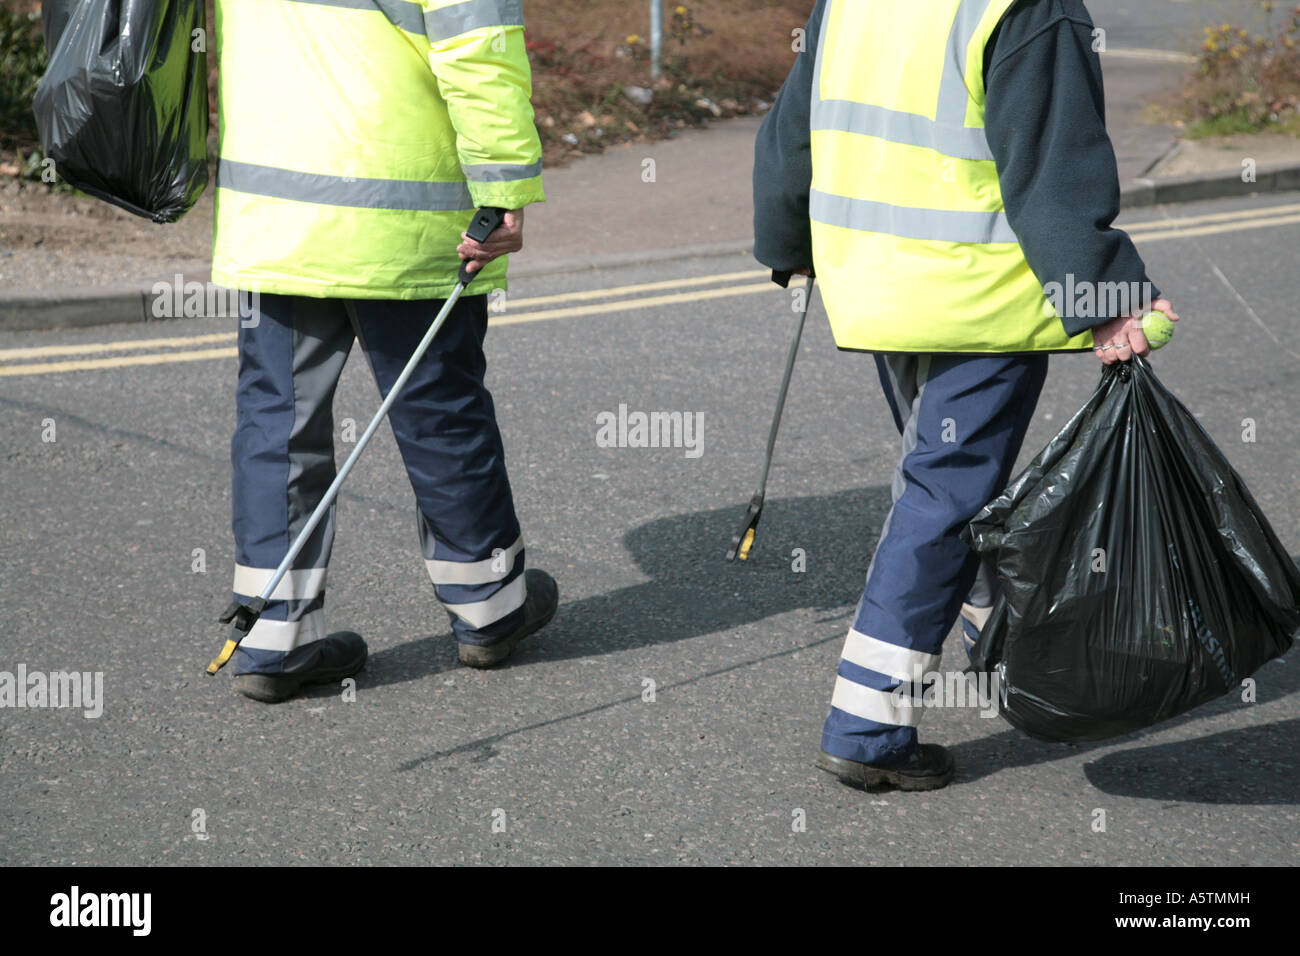 council workers collecting rubbish - Stock Image